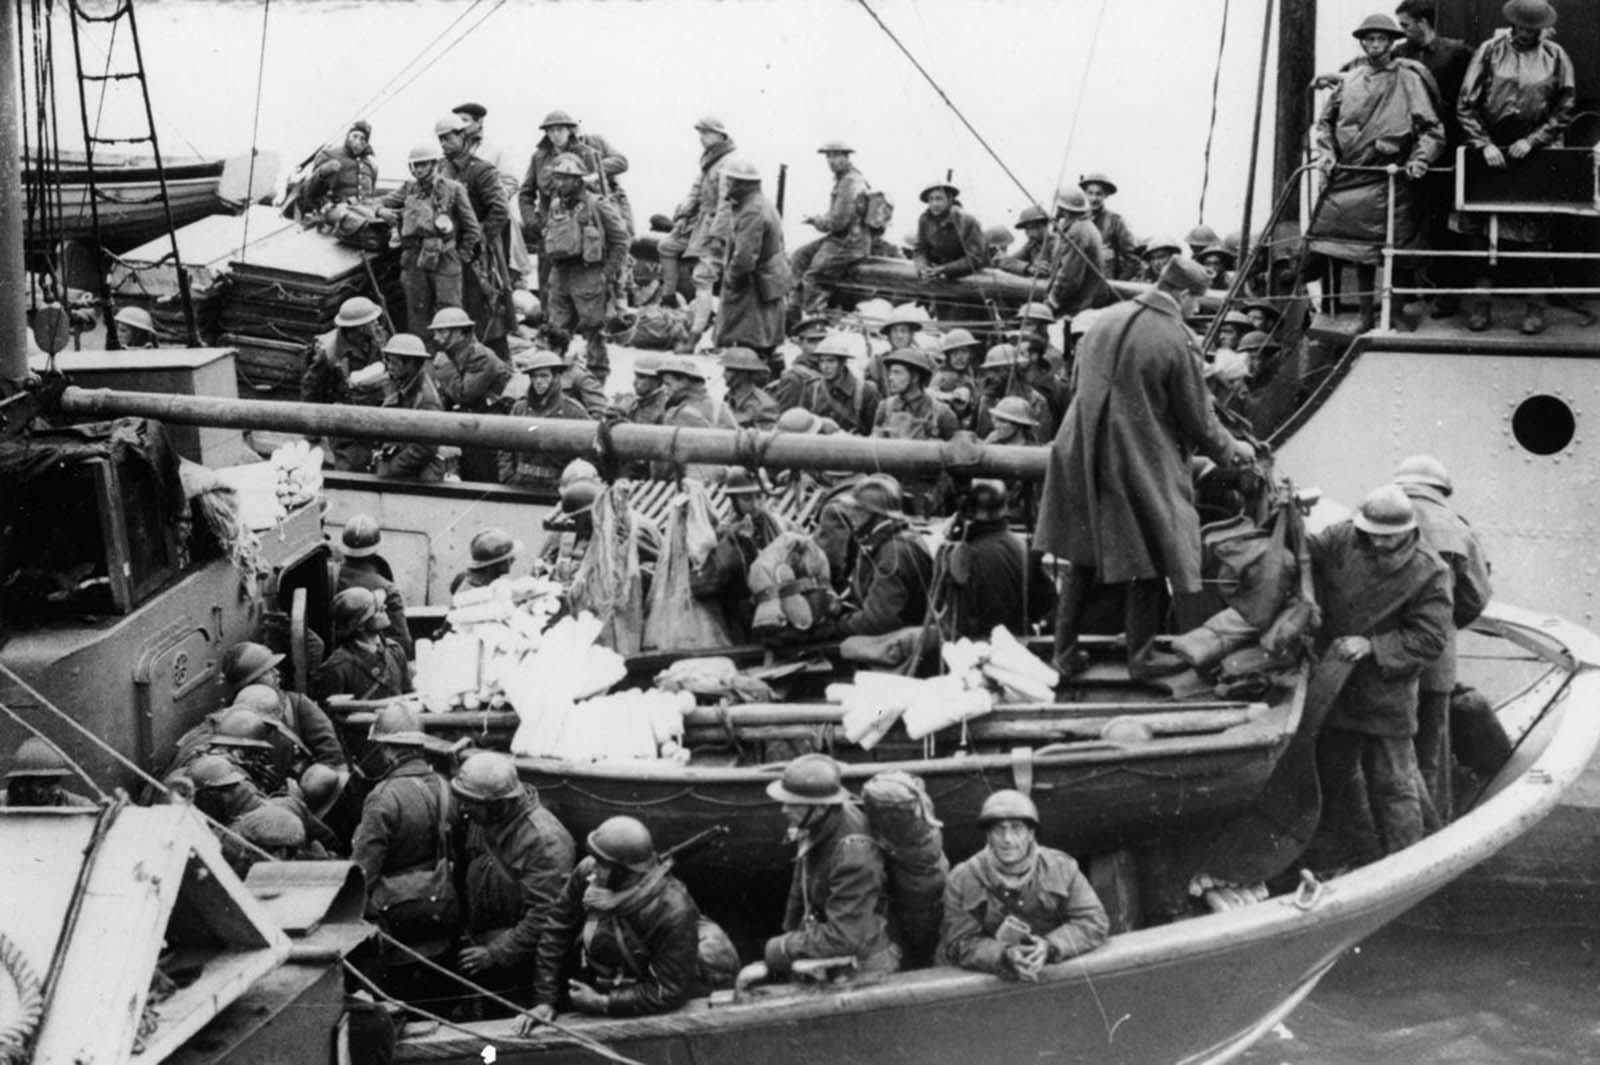 British and French soldiers arrive safely at a British port.